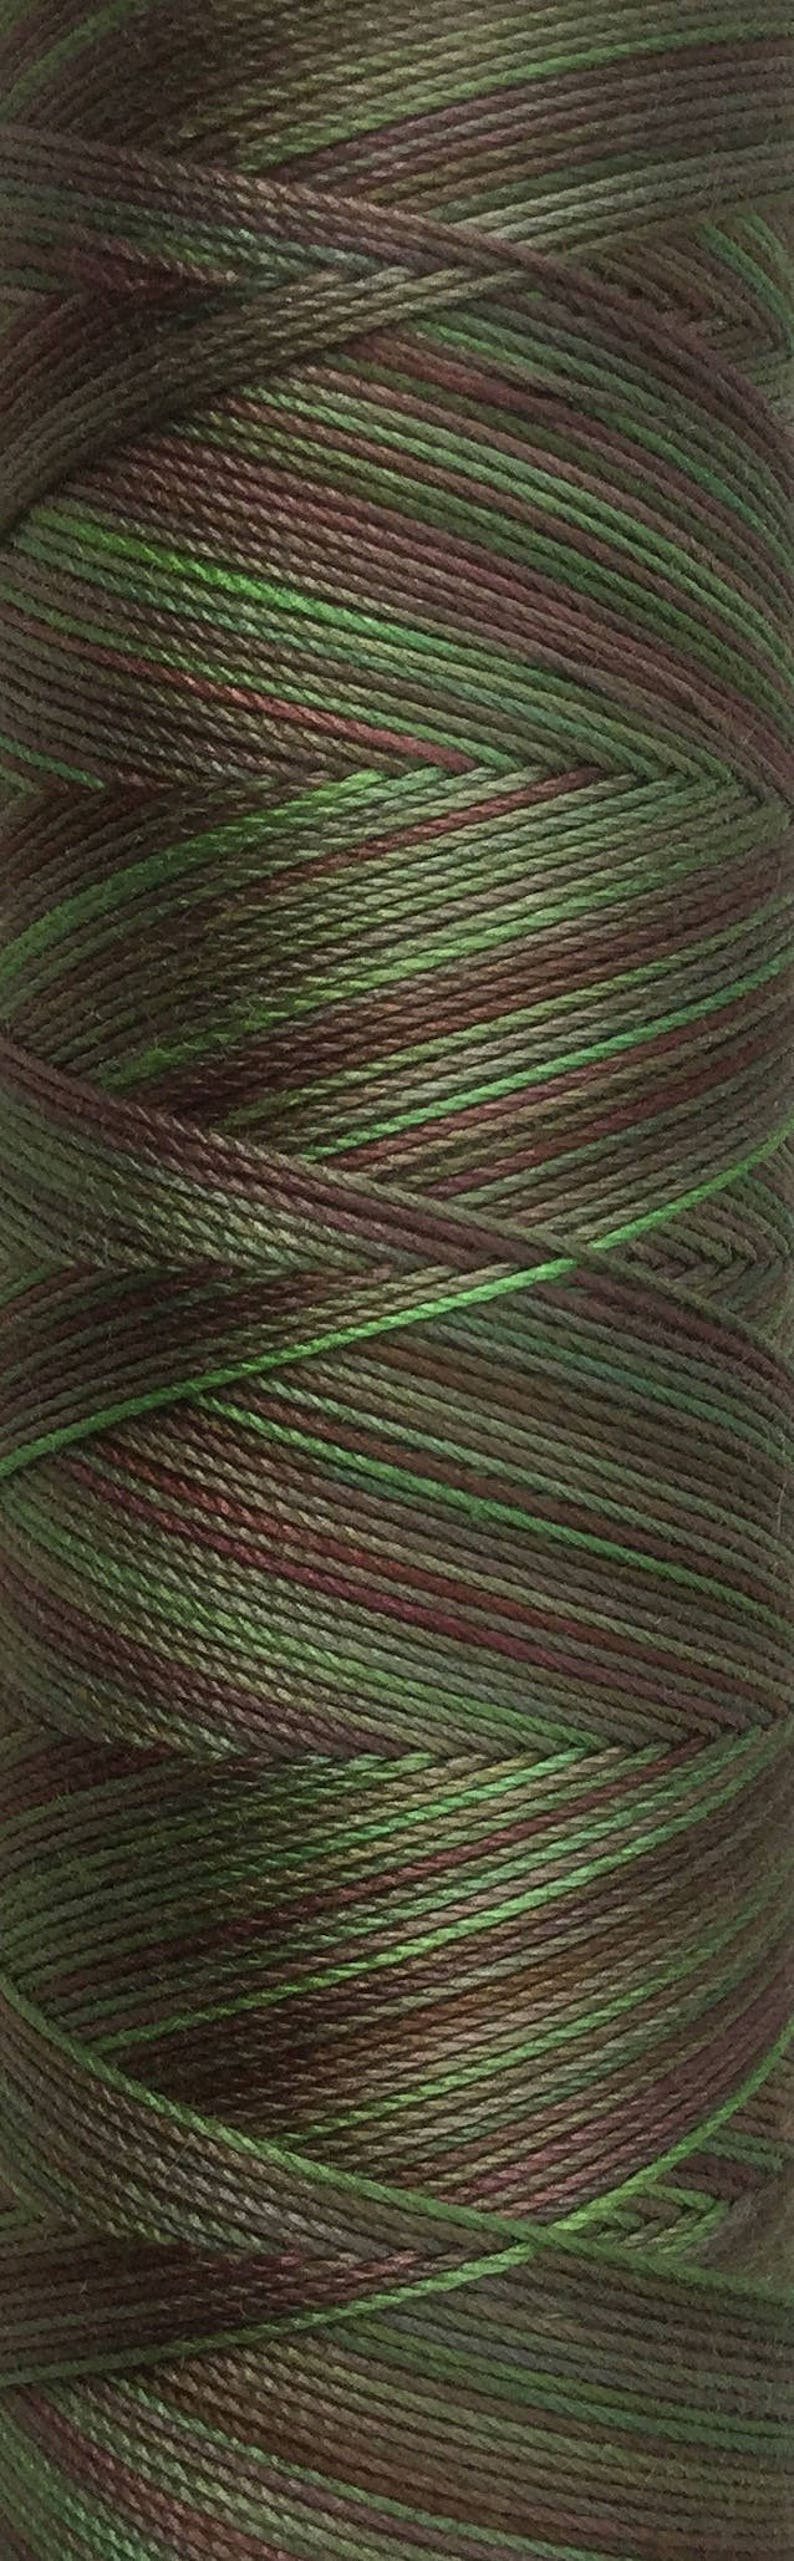 No.54 Moss Hand Dyed Cotton Machine Thread Individual Spool image 0